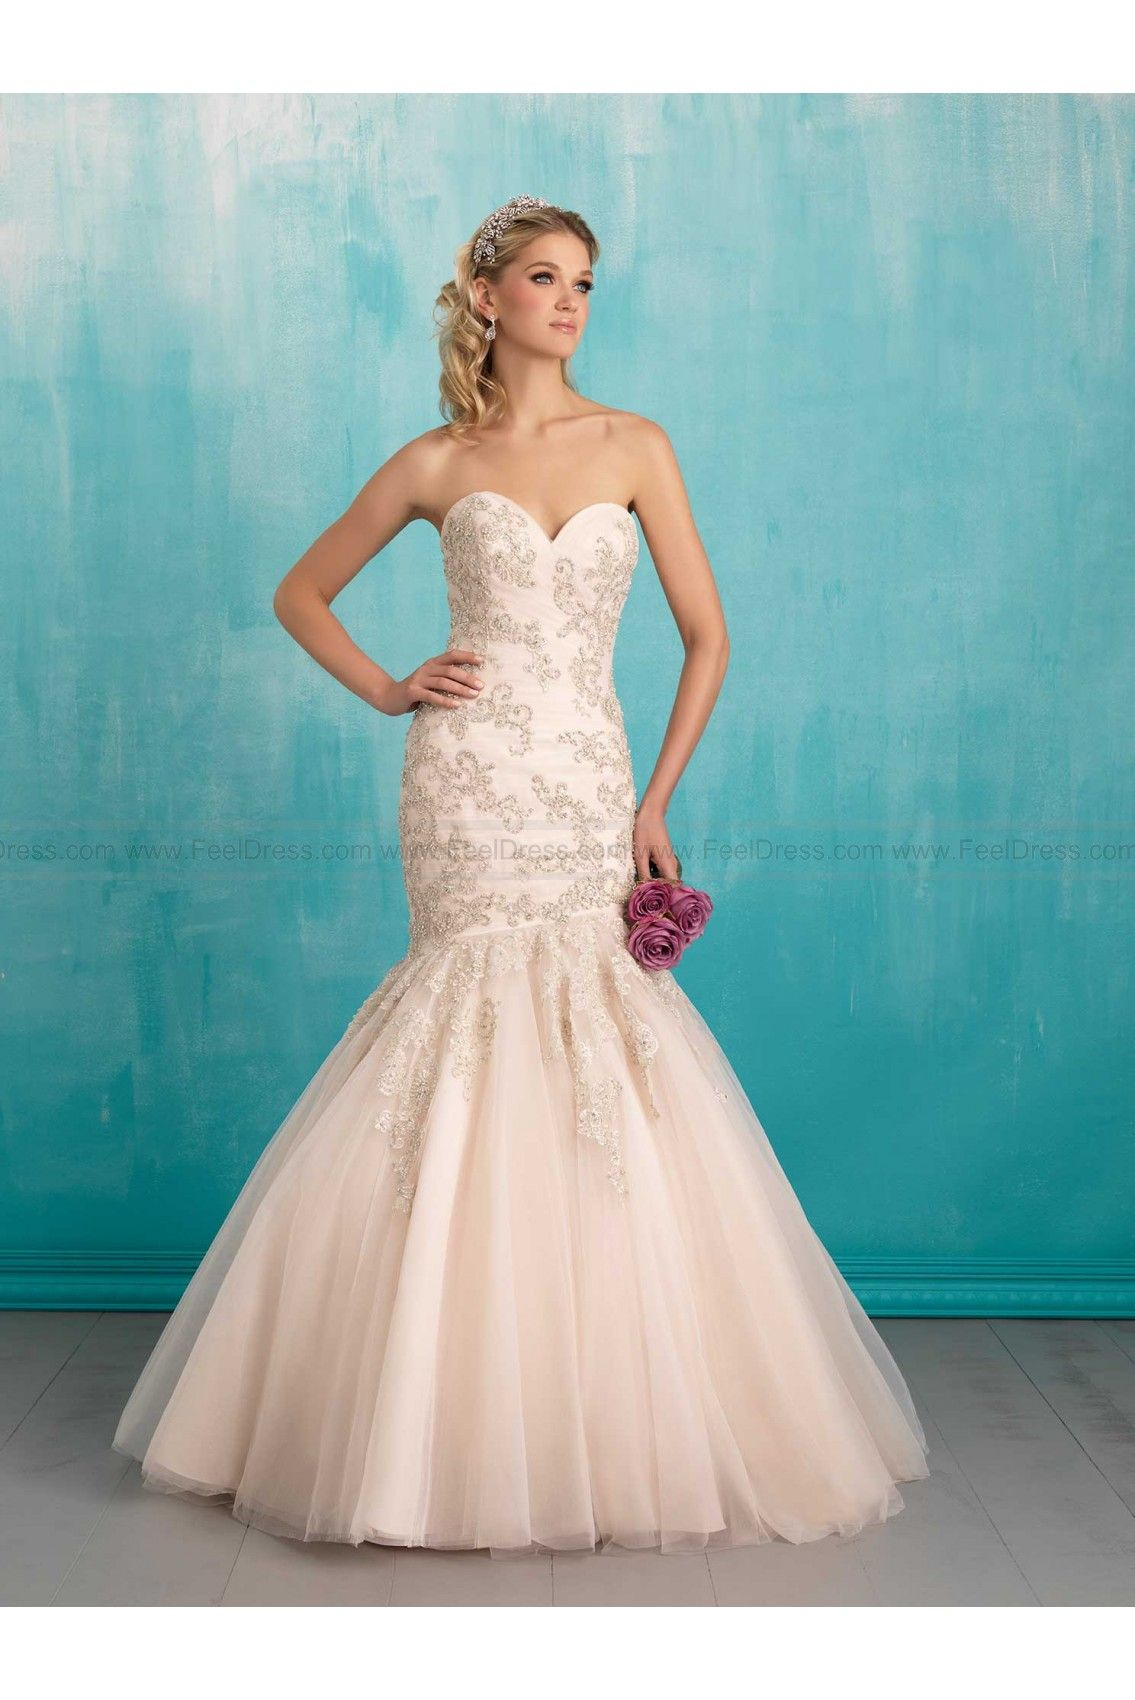 Awesome Wedding Dresses Ebay | Wedding